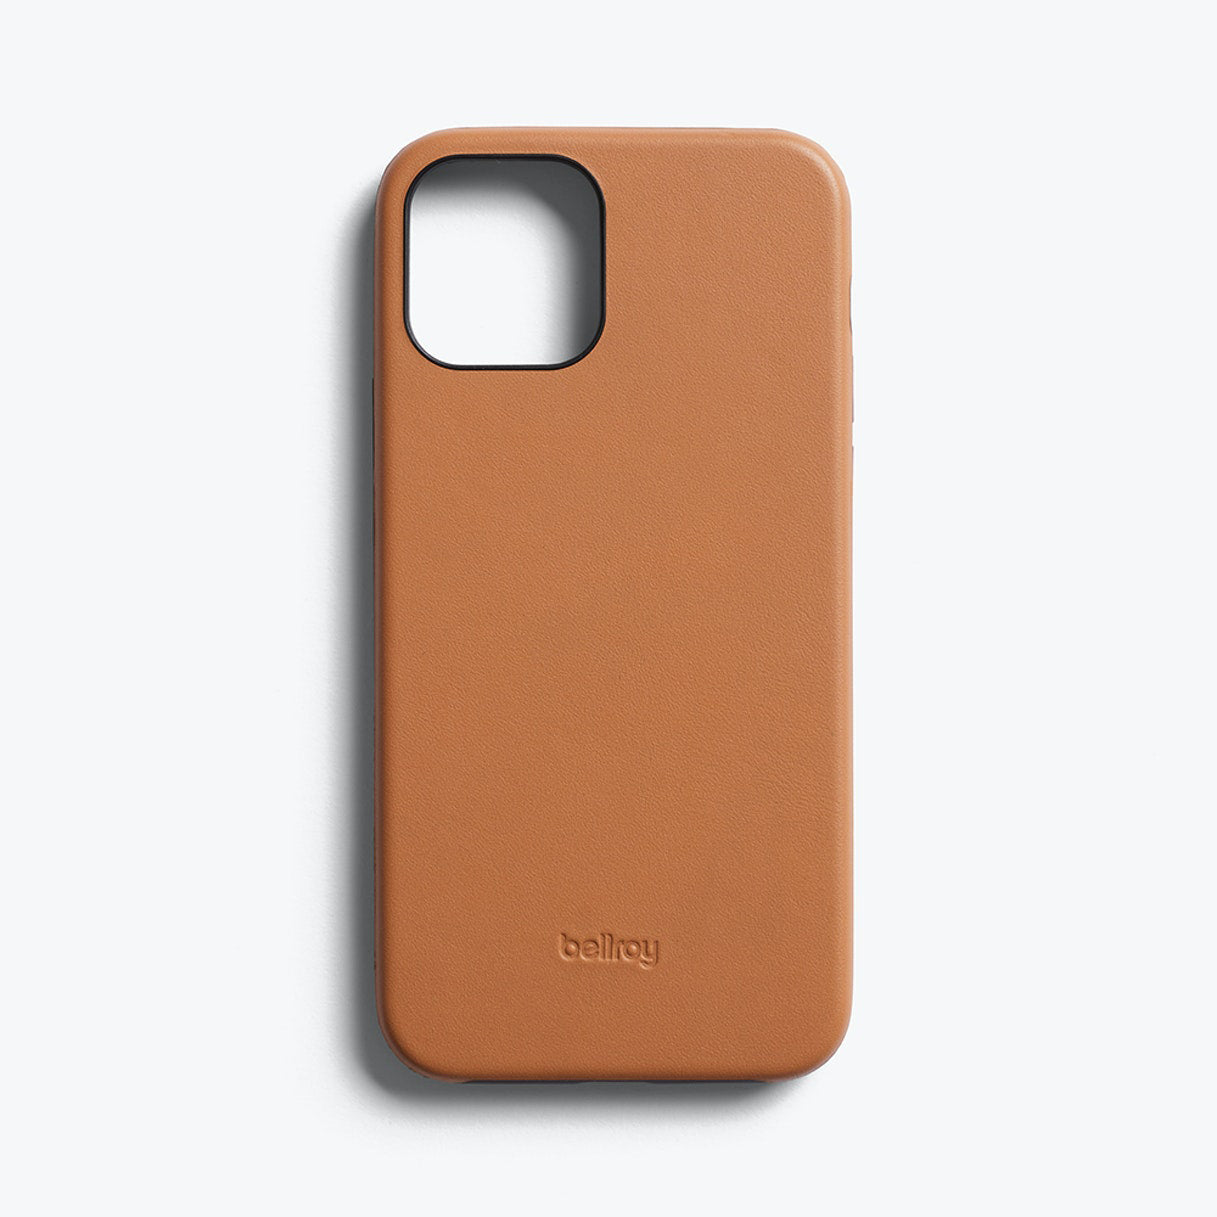 Bellroy Slim Genuine Leather Case For iPhone iPhone 12 / 12 Pro - TOFFEE